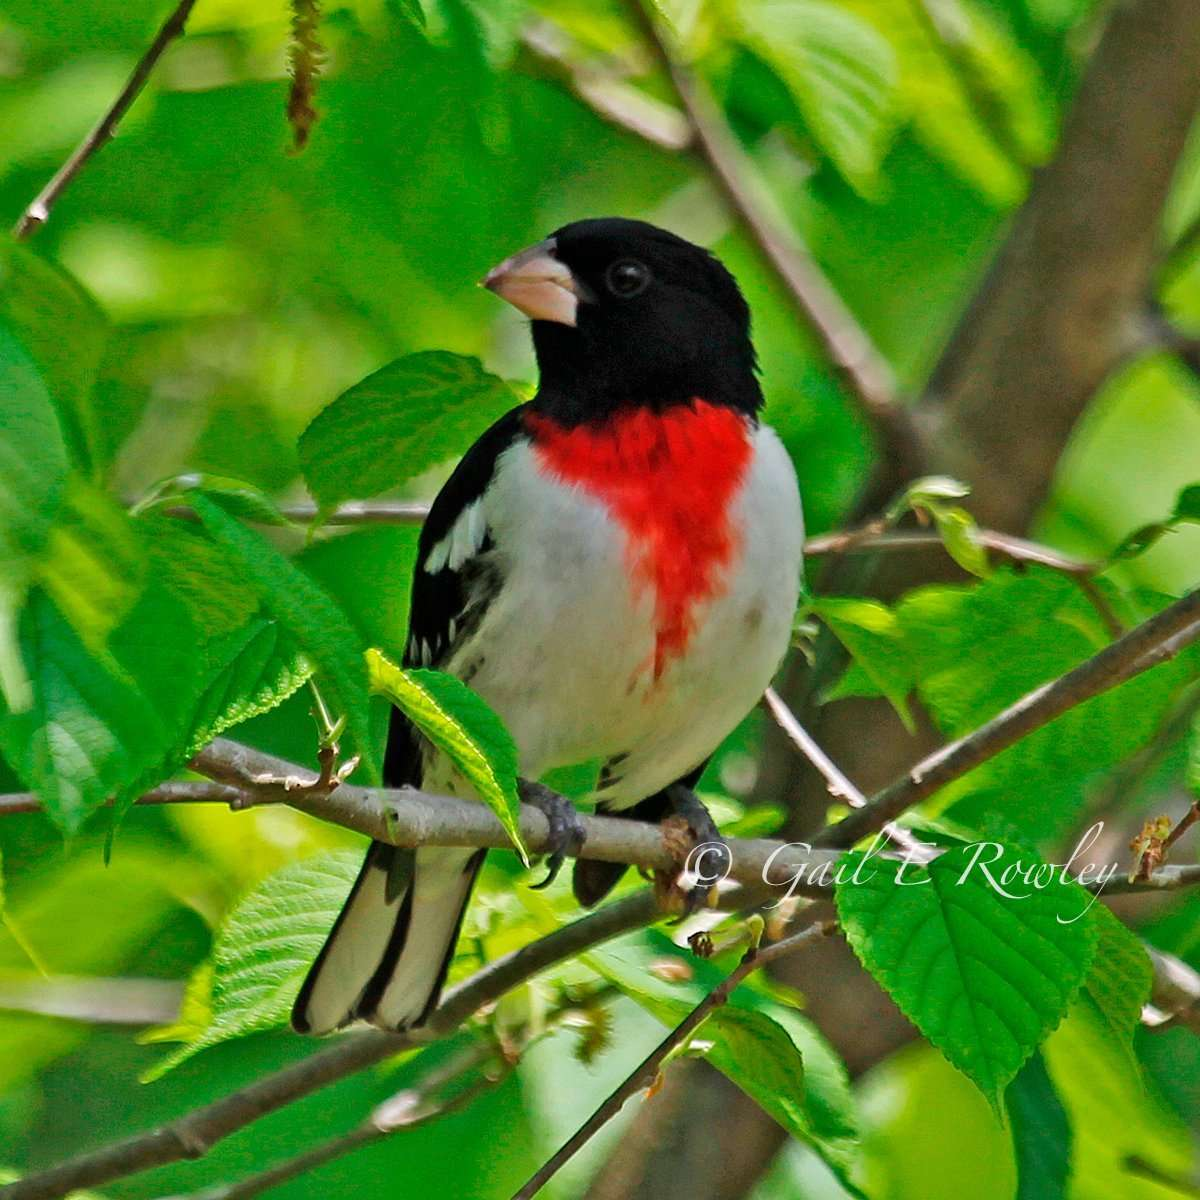 Rose-breasted Grosbeak in Spring photo by Gail E Rowley Ozark Stream Photography